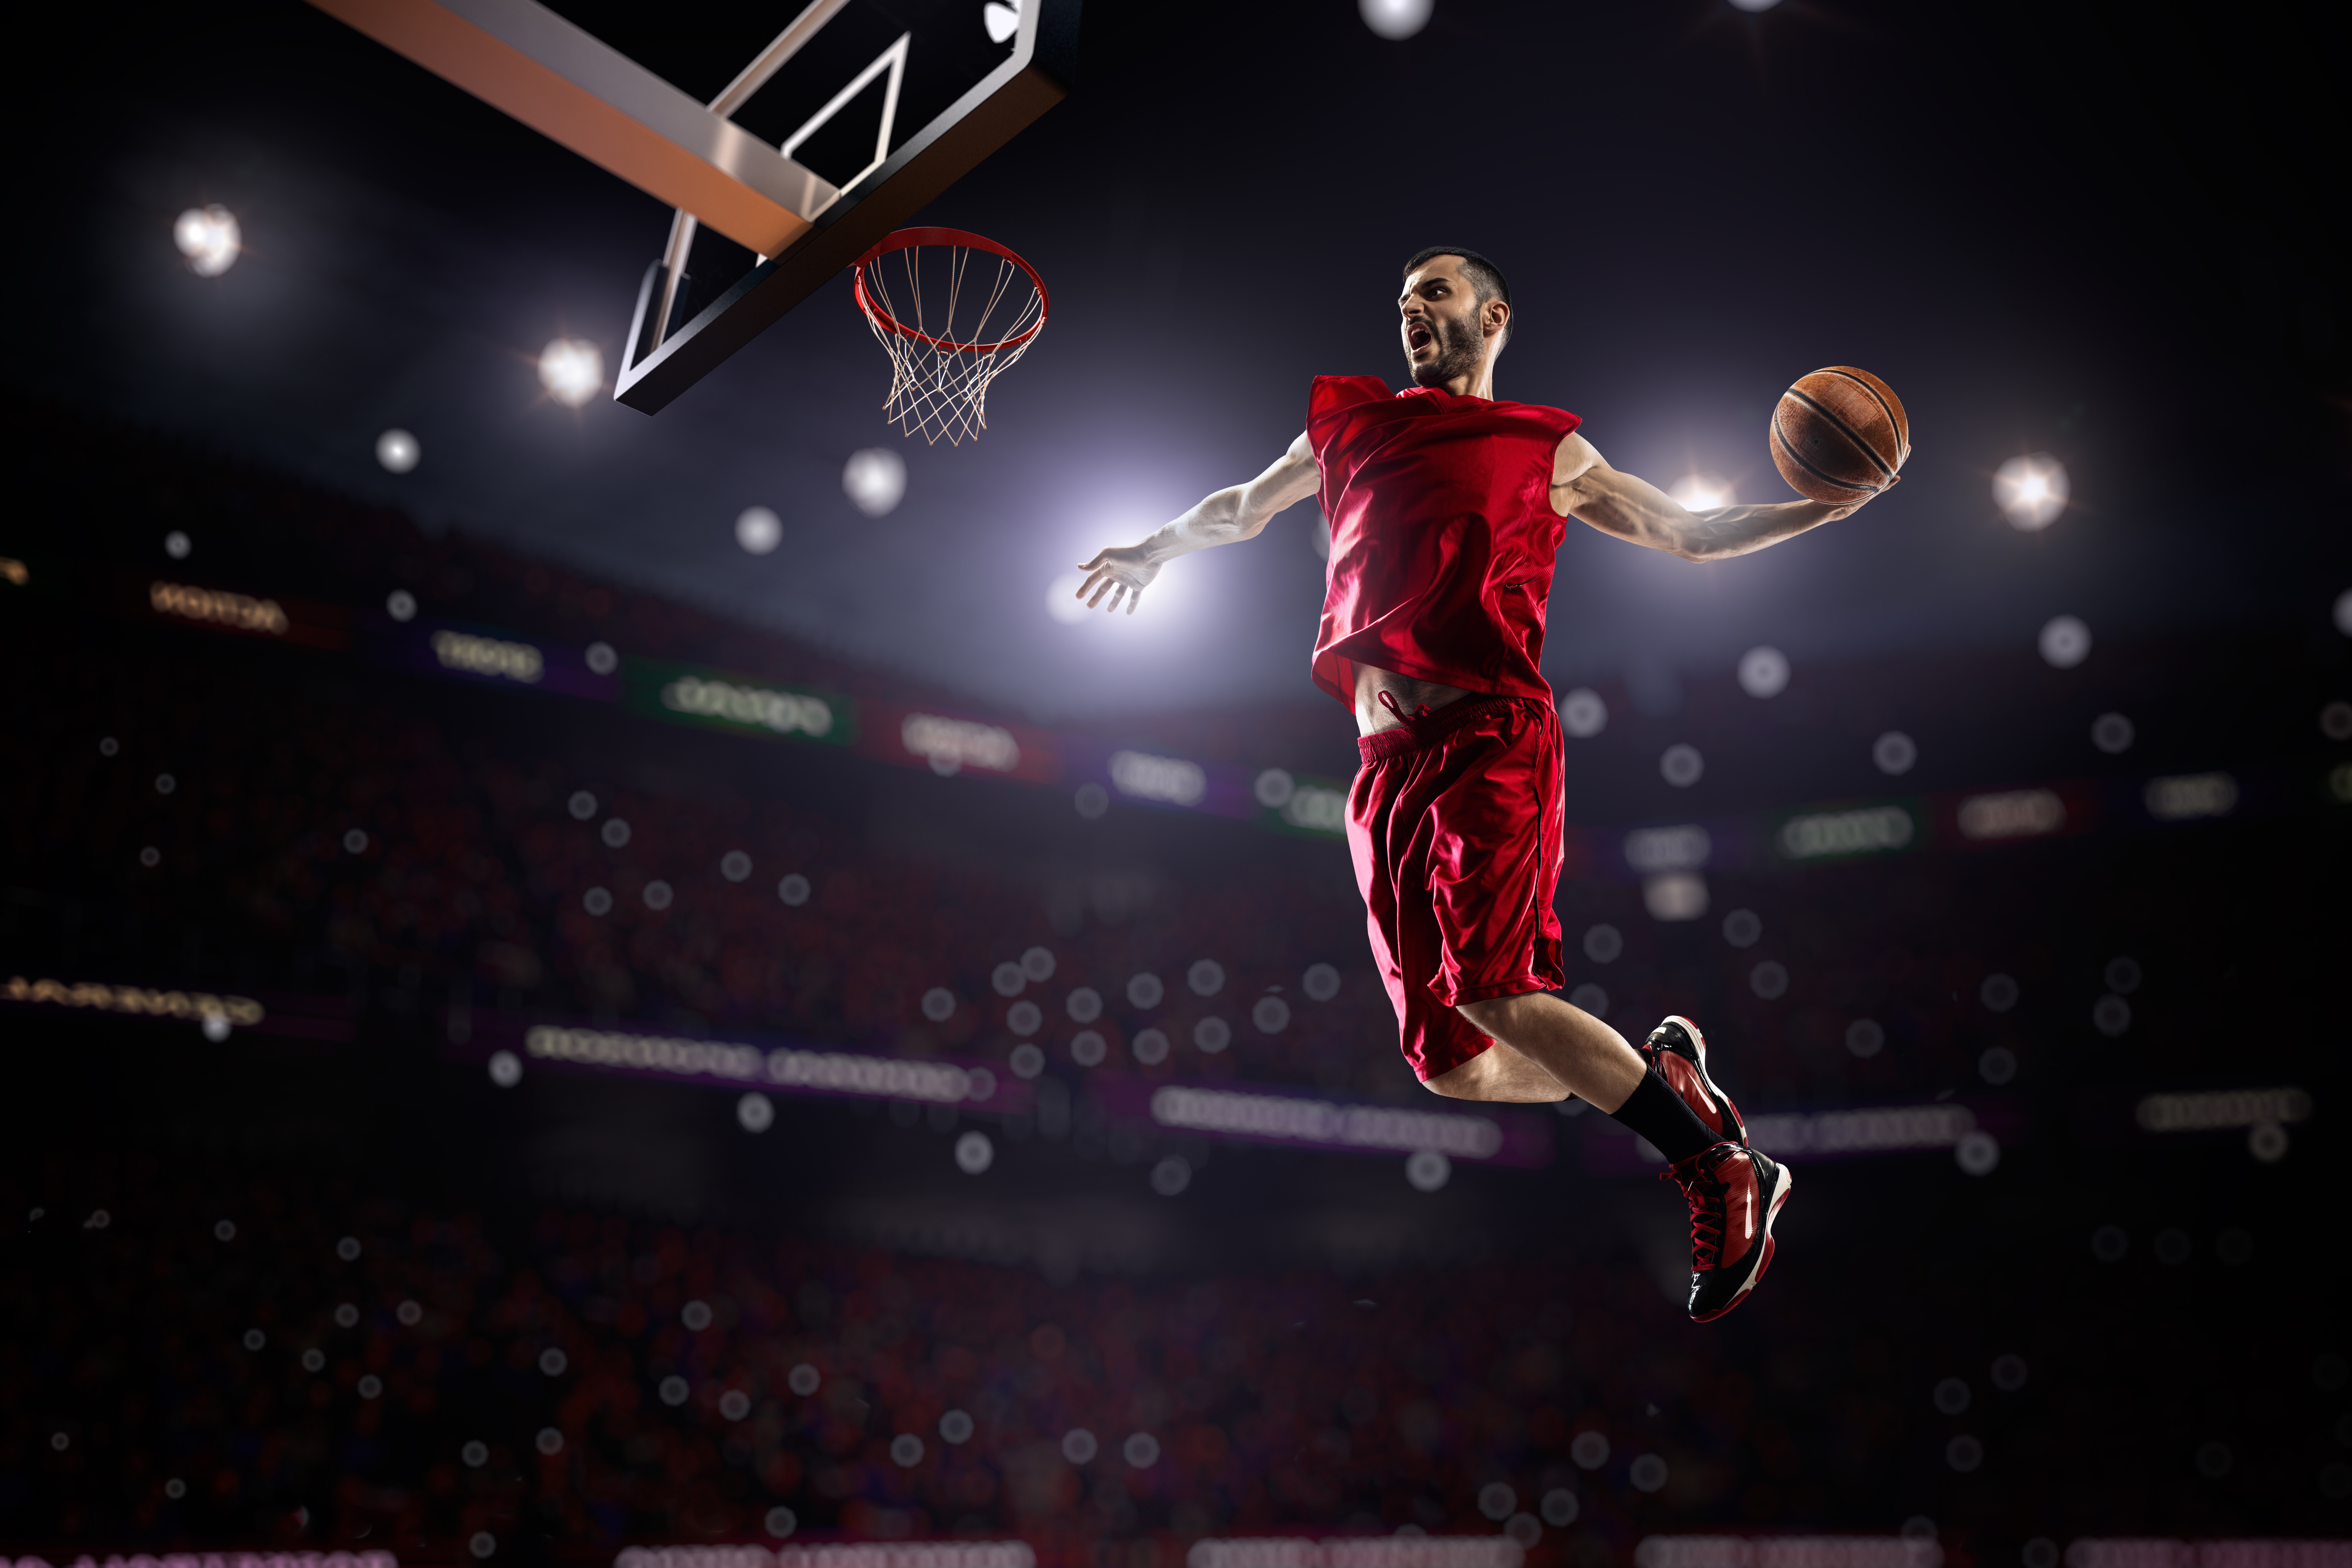 Design Kitchen Ideas Red Basketball Player In Action Custom Wallpaper